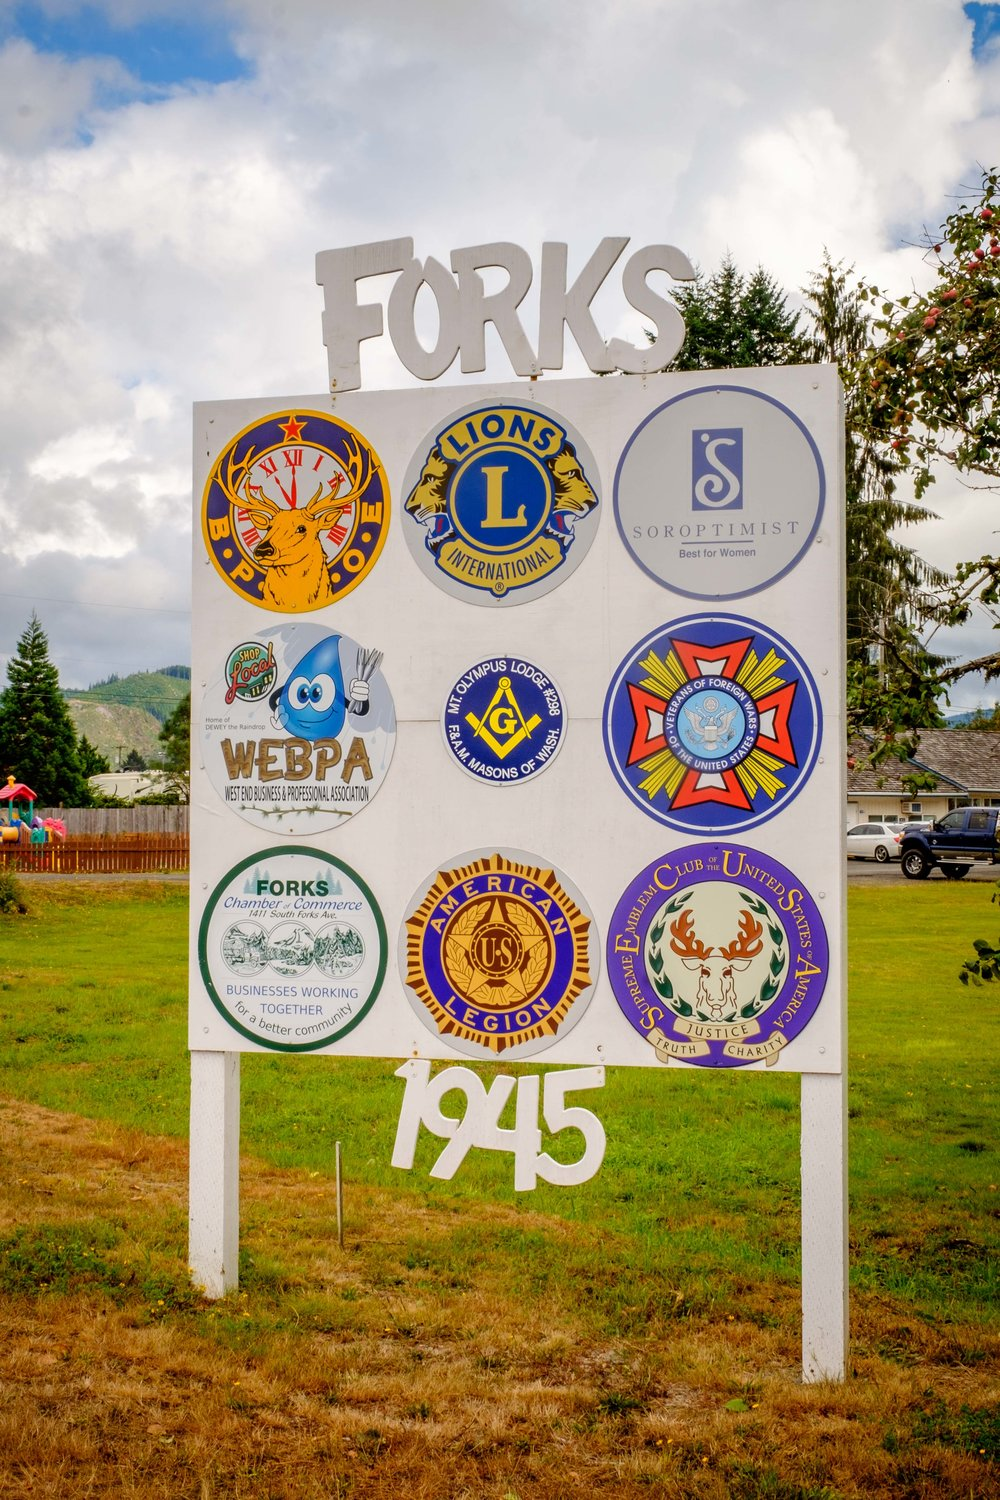 Forks! Where the vampires live. :)